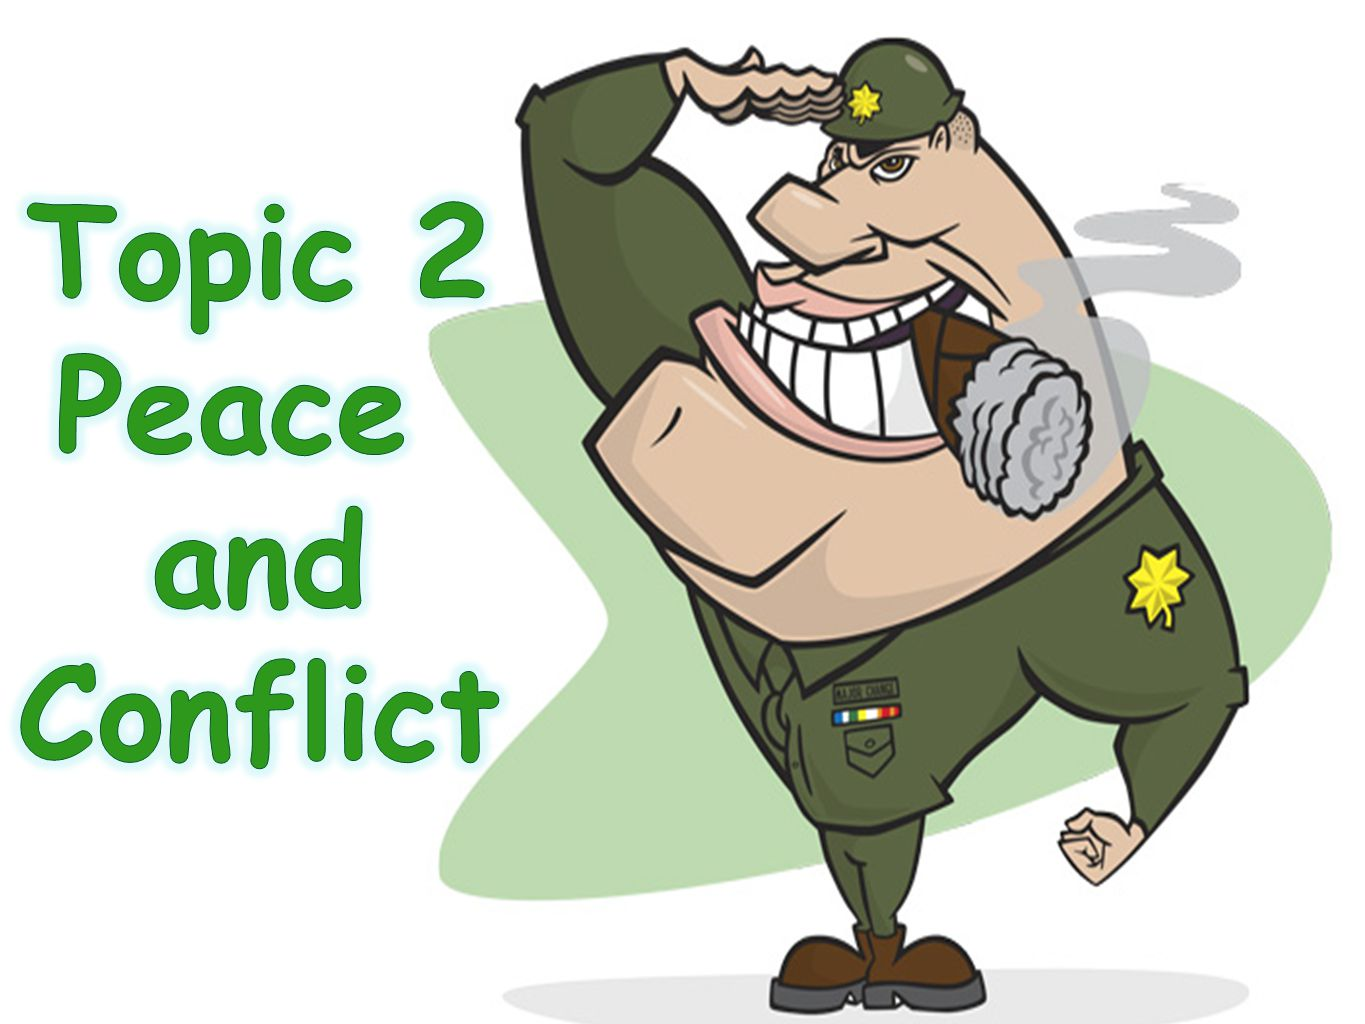 Topic 2 Peace and Conflict